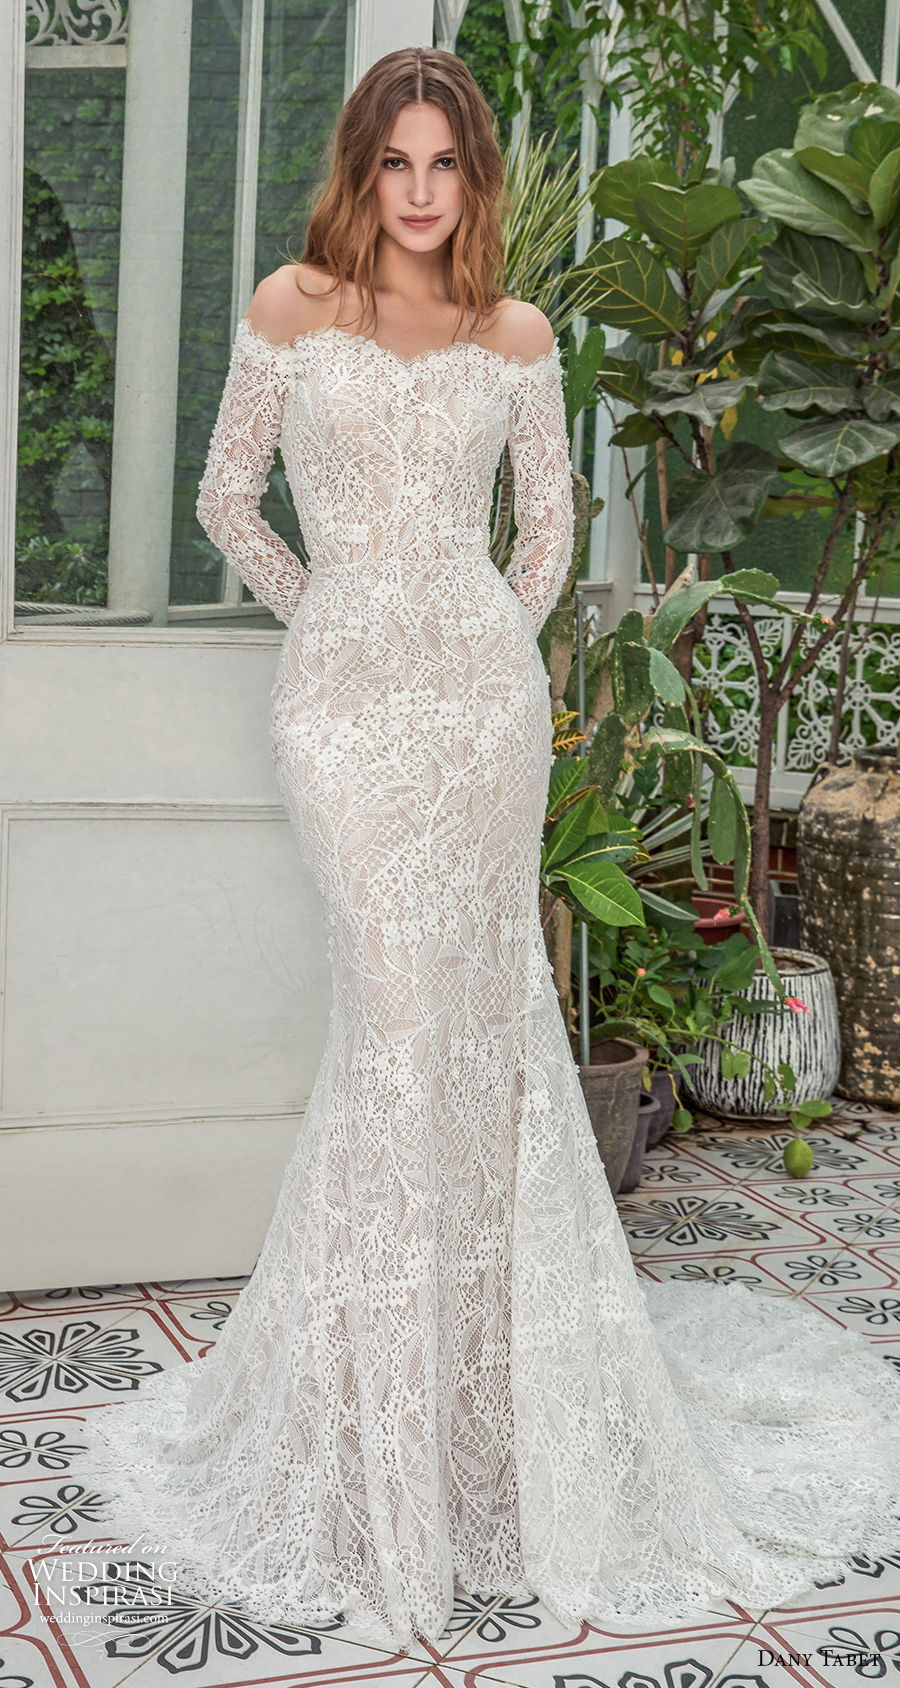 dany tabet 2021 emerge bridal long sleeves off the shoulder sweetheart neckline full embellishment elegant fit and flare wedding dress covered lace back chapel train (8) mv